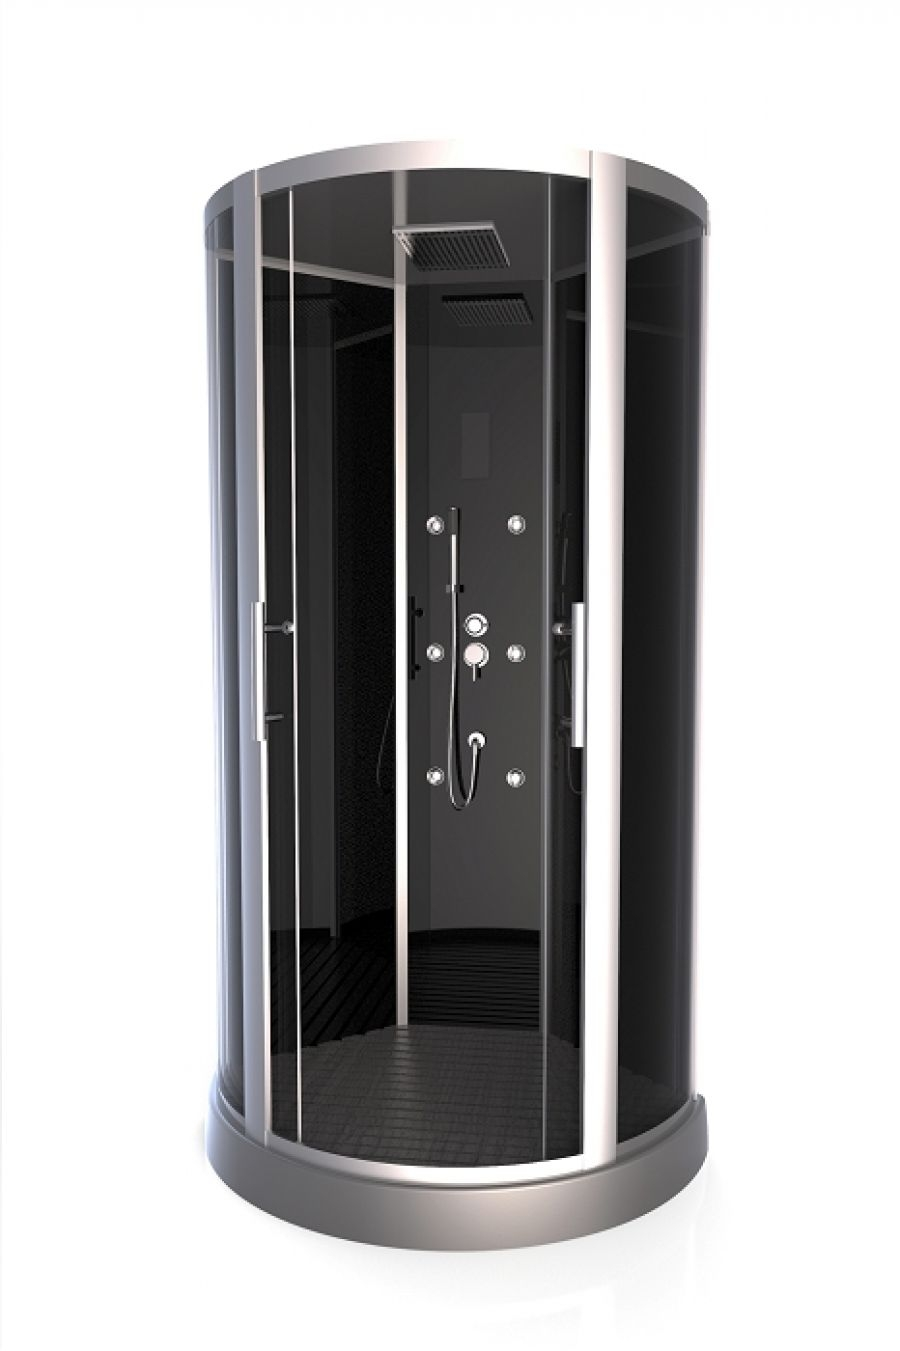 cabine de douche 1 4 rond premium round 95cm meuble de salle de bain. Black Bedroom Furniture Sets. Home Design Ideas